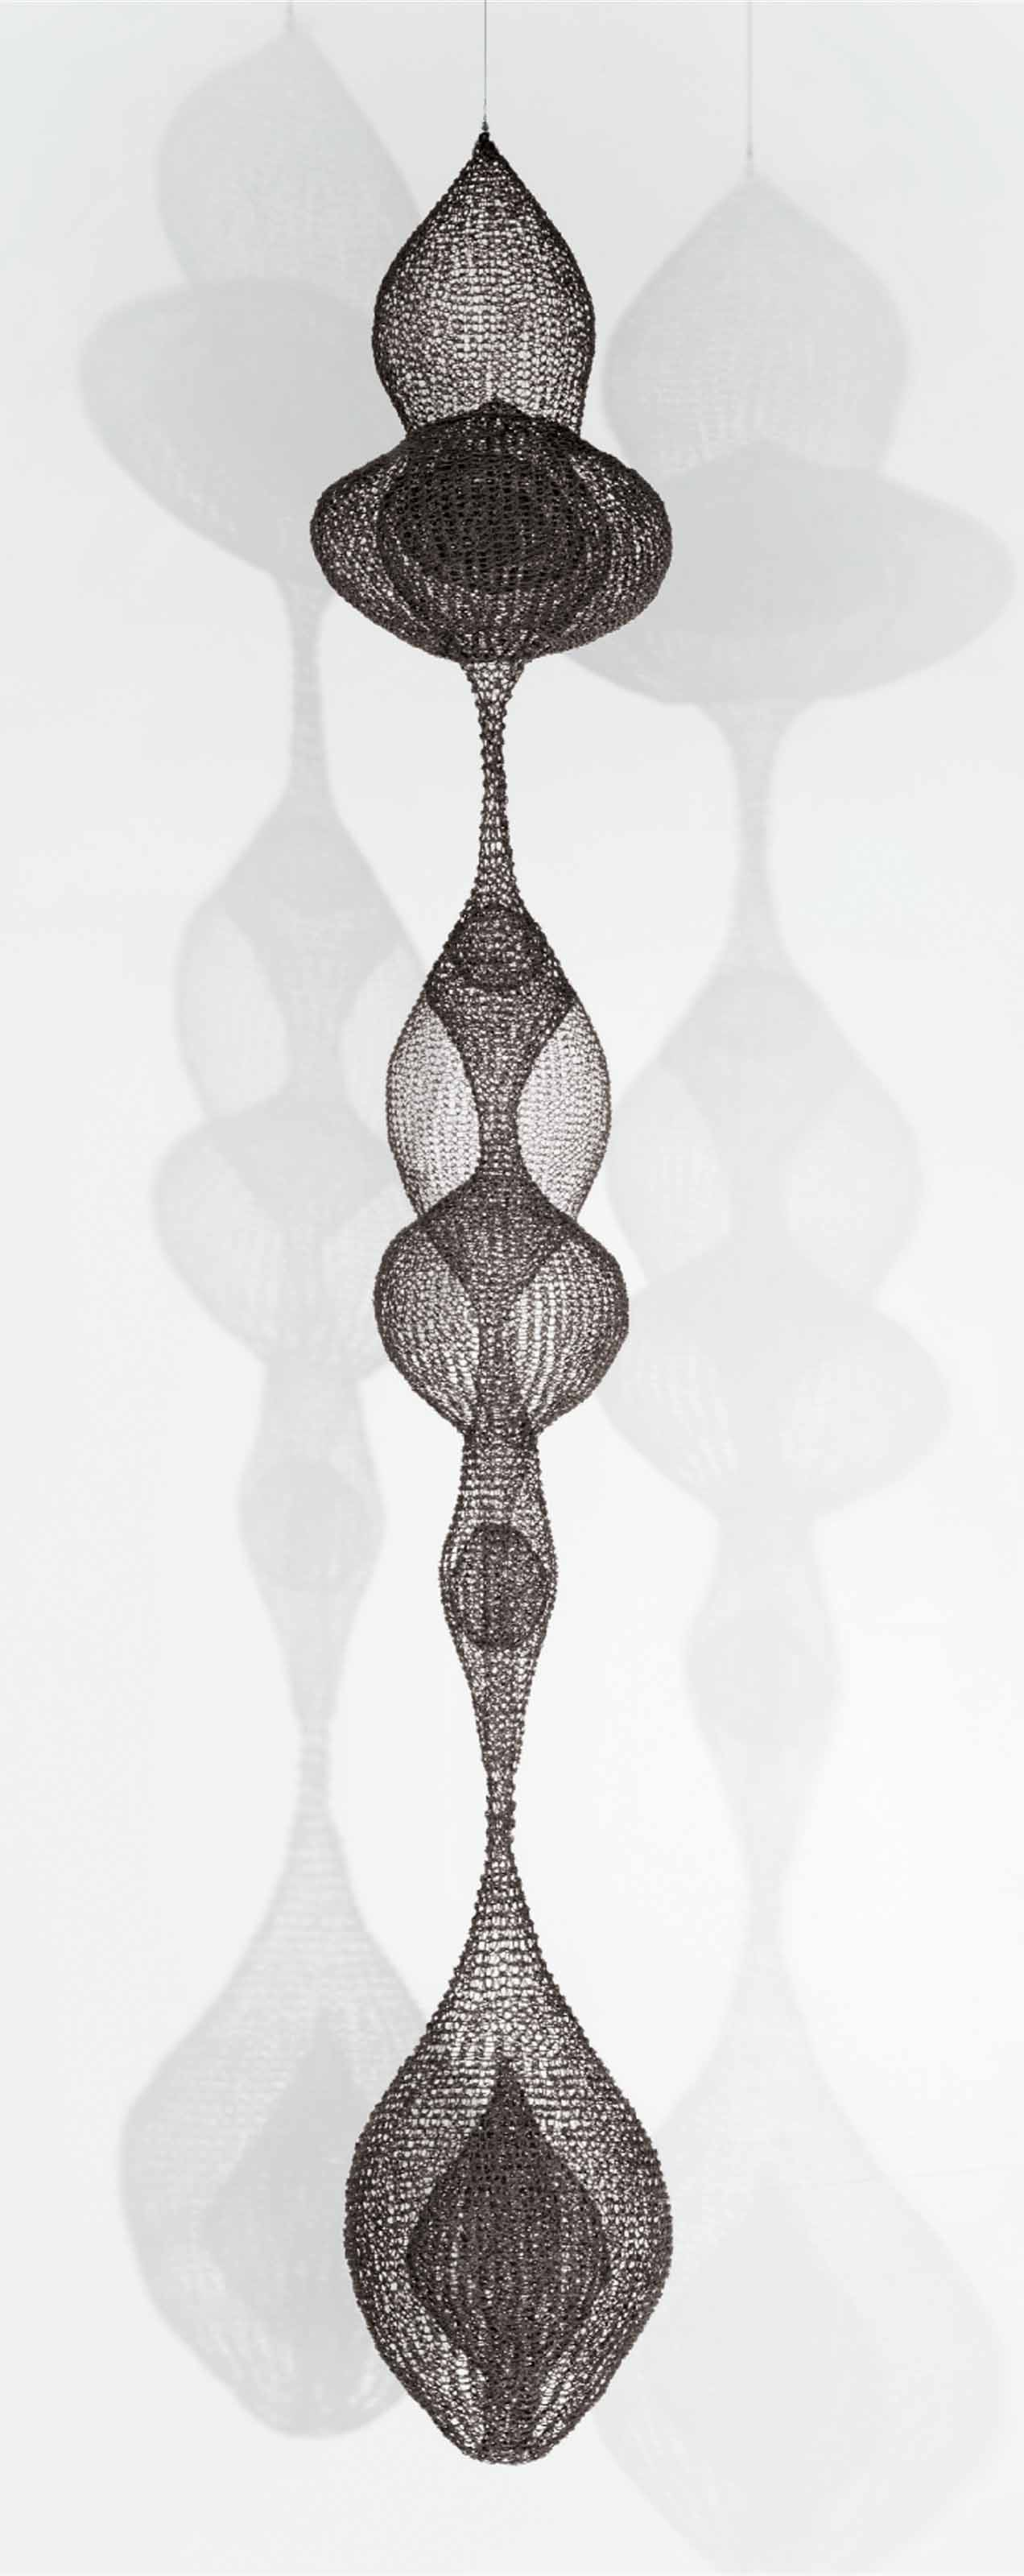 Untitled (S.108 Hanging, Six-Lobed, Multi-Layered Continuous Form Within a Form)